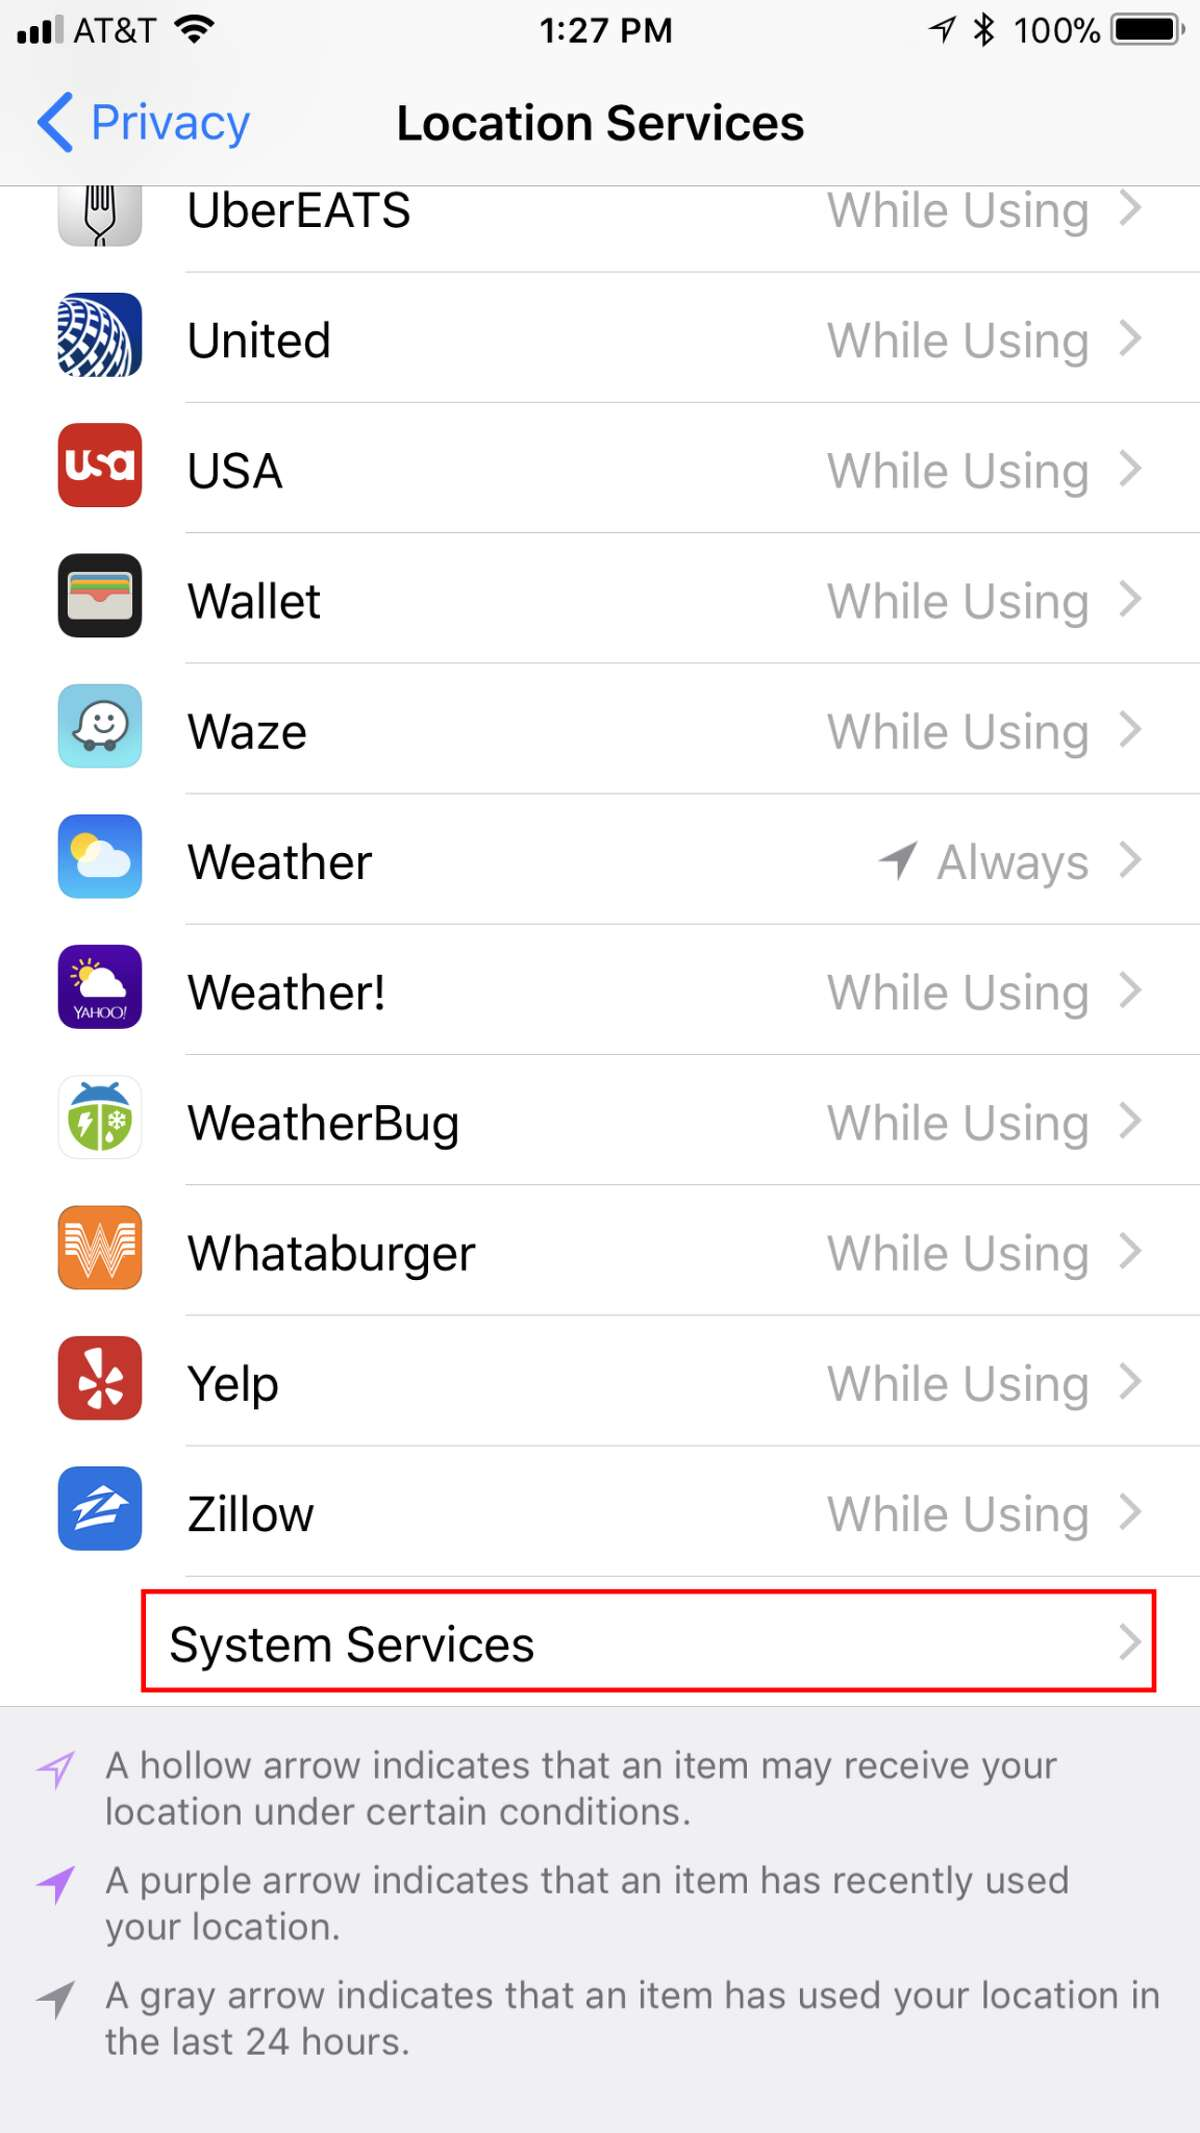 Scroll all the way down to System Services.